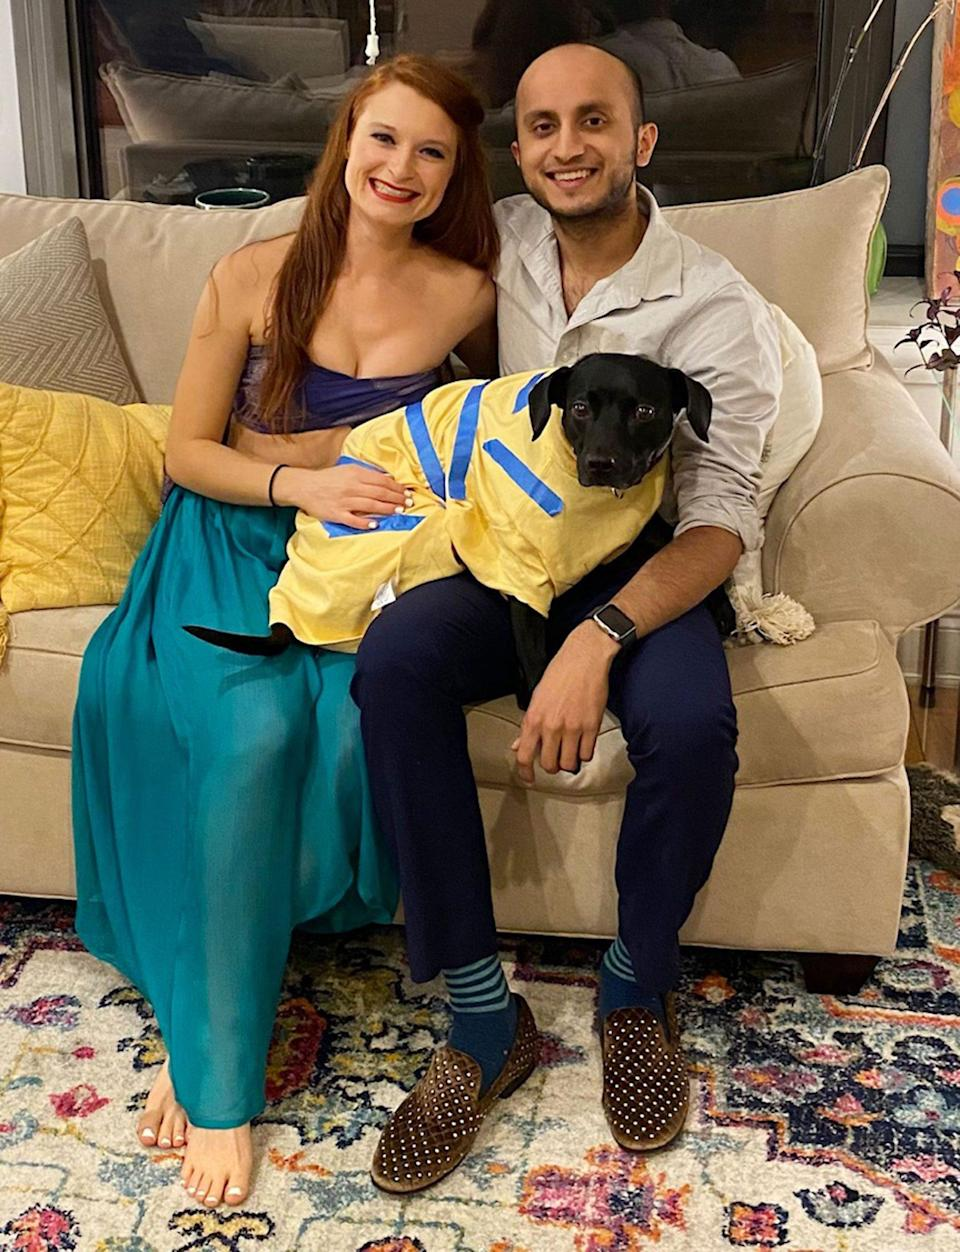 "<p><strong>Names:</strong> Alexandra Rodriguez-Beuerman & Subbu Mishra (and their dog, Ronnie) </p> <p><strong>Ages:</strong> Both 28, Ronnie is 3.5<br> <strong>Location:</strong> Chicago <br> <strong>Submitted By:</strong> Alexandra</p>   <p>Subbu and I had been dating for four-and-a-half<br>years when the pandemic hit. At the time we were living about two miles apart in two different apartments — me with three other roommates and him with one — and going back and forth every four days or so (with our dog, Ronnie). Once we got the news that we shouldn't really be traveling, even such a small distance (Ubers and public transportation seemed unsafe), we decided to spend the next few weeks (or so we thought at the time) of quarantine at my place. Believing that it wouldn't be too long, we settled into living in my bedroom with the shared living room space of everyone in the house and their plus-ones. At one point, we had eight people in a home that was really meant for four. <br> <br> Working and living in one bedroom certainly had its difficulties — Subbu is in medical school and I was finishing up graduate school while working, so we would alternate working at the desk or on the bed. Though it was crowded, I was grateful that we were able to be together. When I was feeling down he would force me to go for runs with him, knowing that movement would make me feel better, and it always did. <br> <br> In August of 2020 we had been planning on moving in together, and though that had been a long time coming, there were certainly still the usual worries of moving in with someone new — would we have similar cleaning styles (short answer: no)? Would we get sick of each other? What would we eat? But after sharing one room for the better part of six months, I was no longer concerned. We had been able to create space for each other and I knew that after that, sharing a full apartment would be a breeze. And truly, it has been. Now, when we need our ""me"" time (video games for him, reading for me), we have different rooms to be in. And anything that the future holds for us, I'm pretty sure we can take it. </p>"